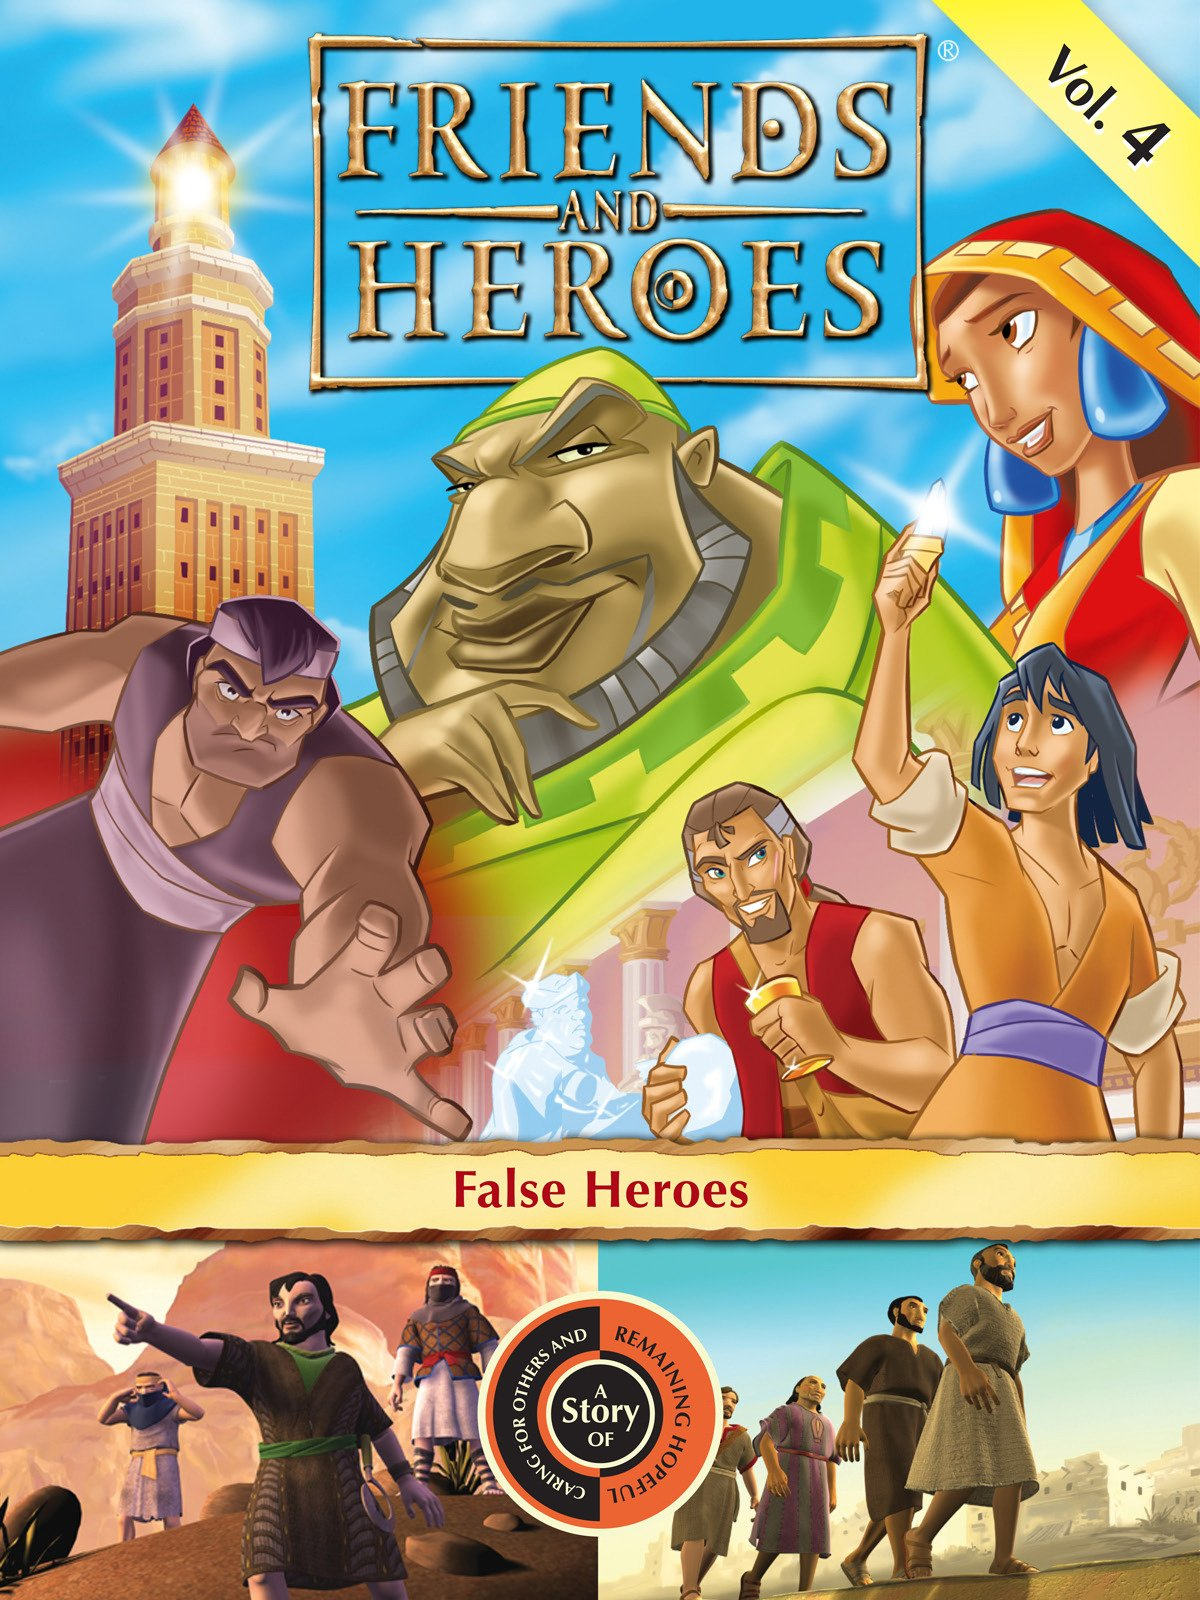 Friends and Heroes, Volume 4 - False Heroes on Amazon Prime Instant Video UK